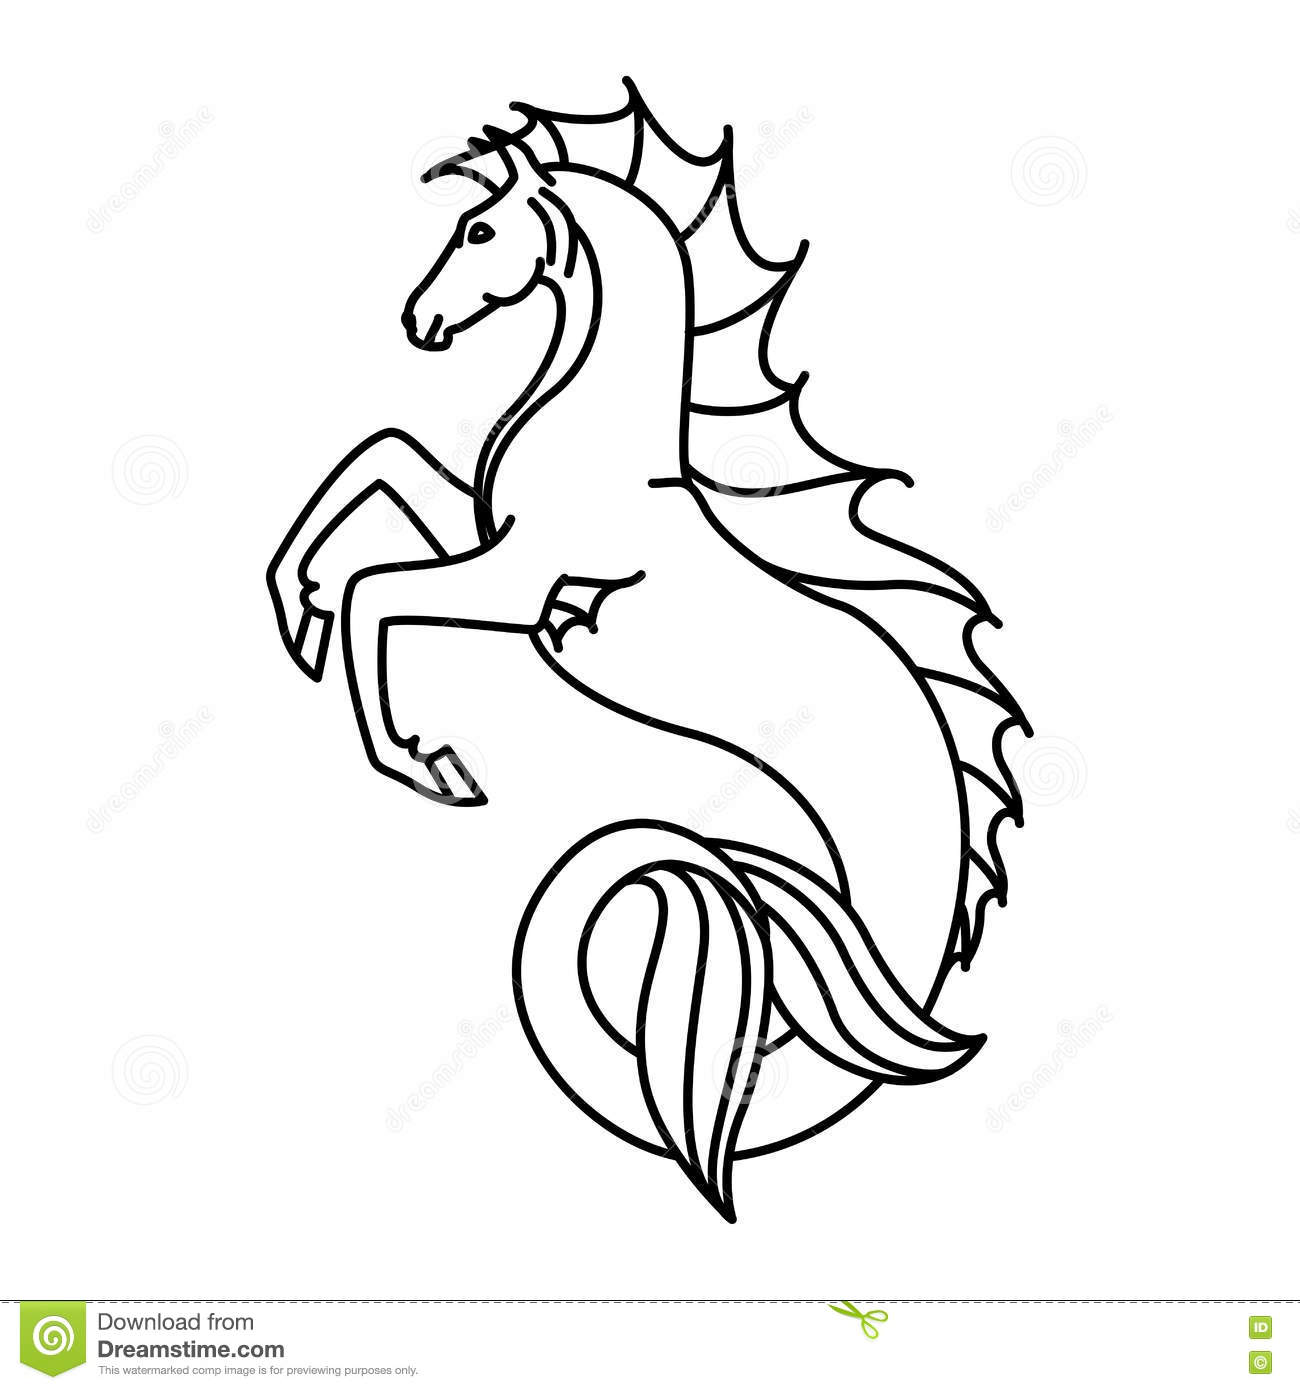 Flat Linear Hippocampus Illustration Vector